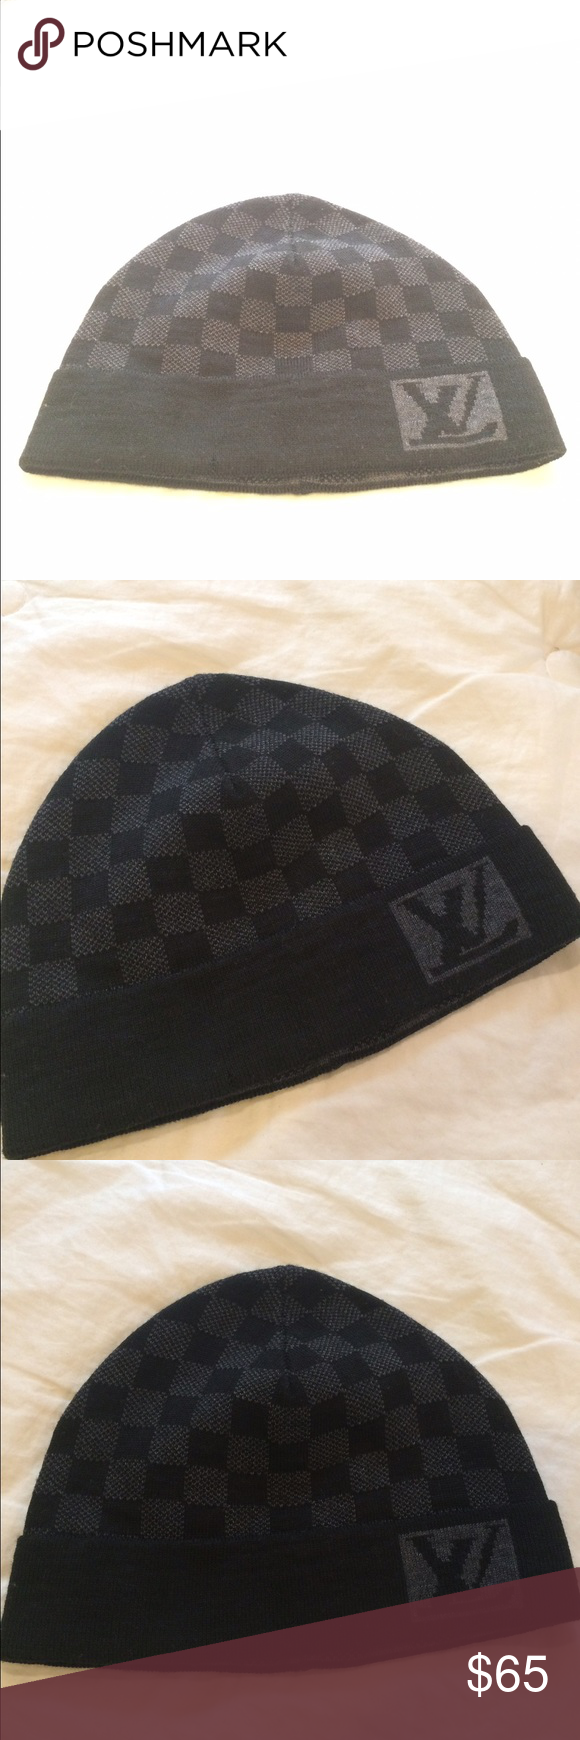 91c9f4ae26b Authentic Louis Vuitton Beanie Gray and black color. Quality is very good.  Real Louis Vuitton Beannie Louis Vuitton Accessories Hats